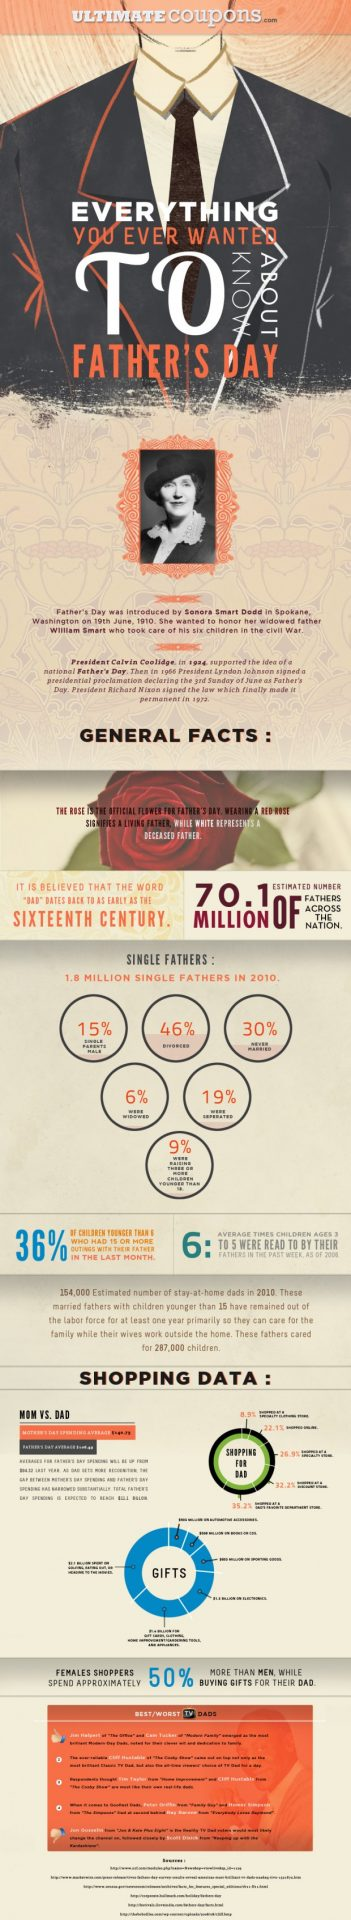 fathersday-infographic-e1308382216581.jpg